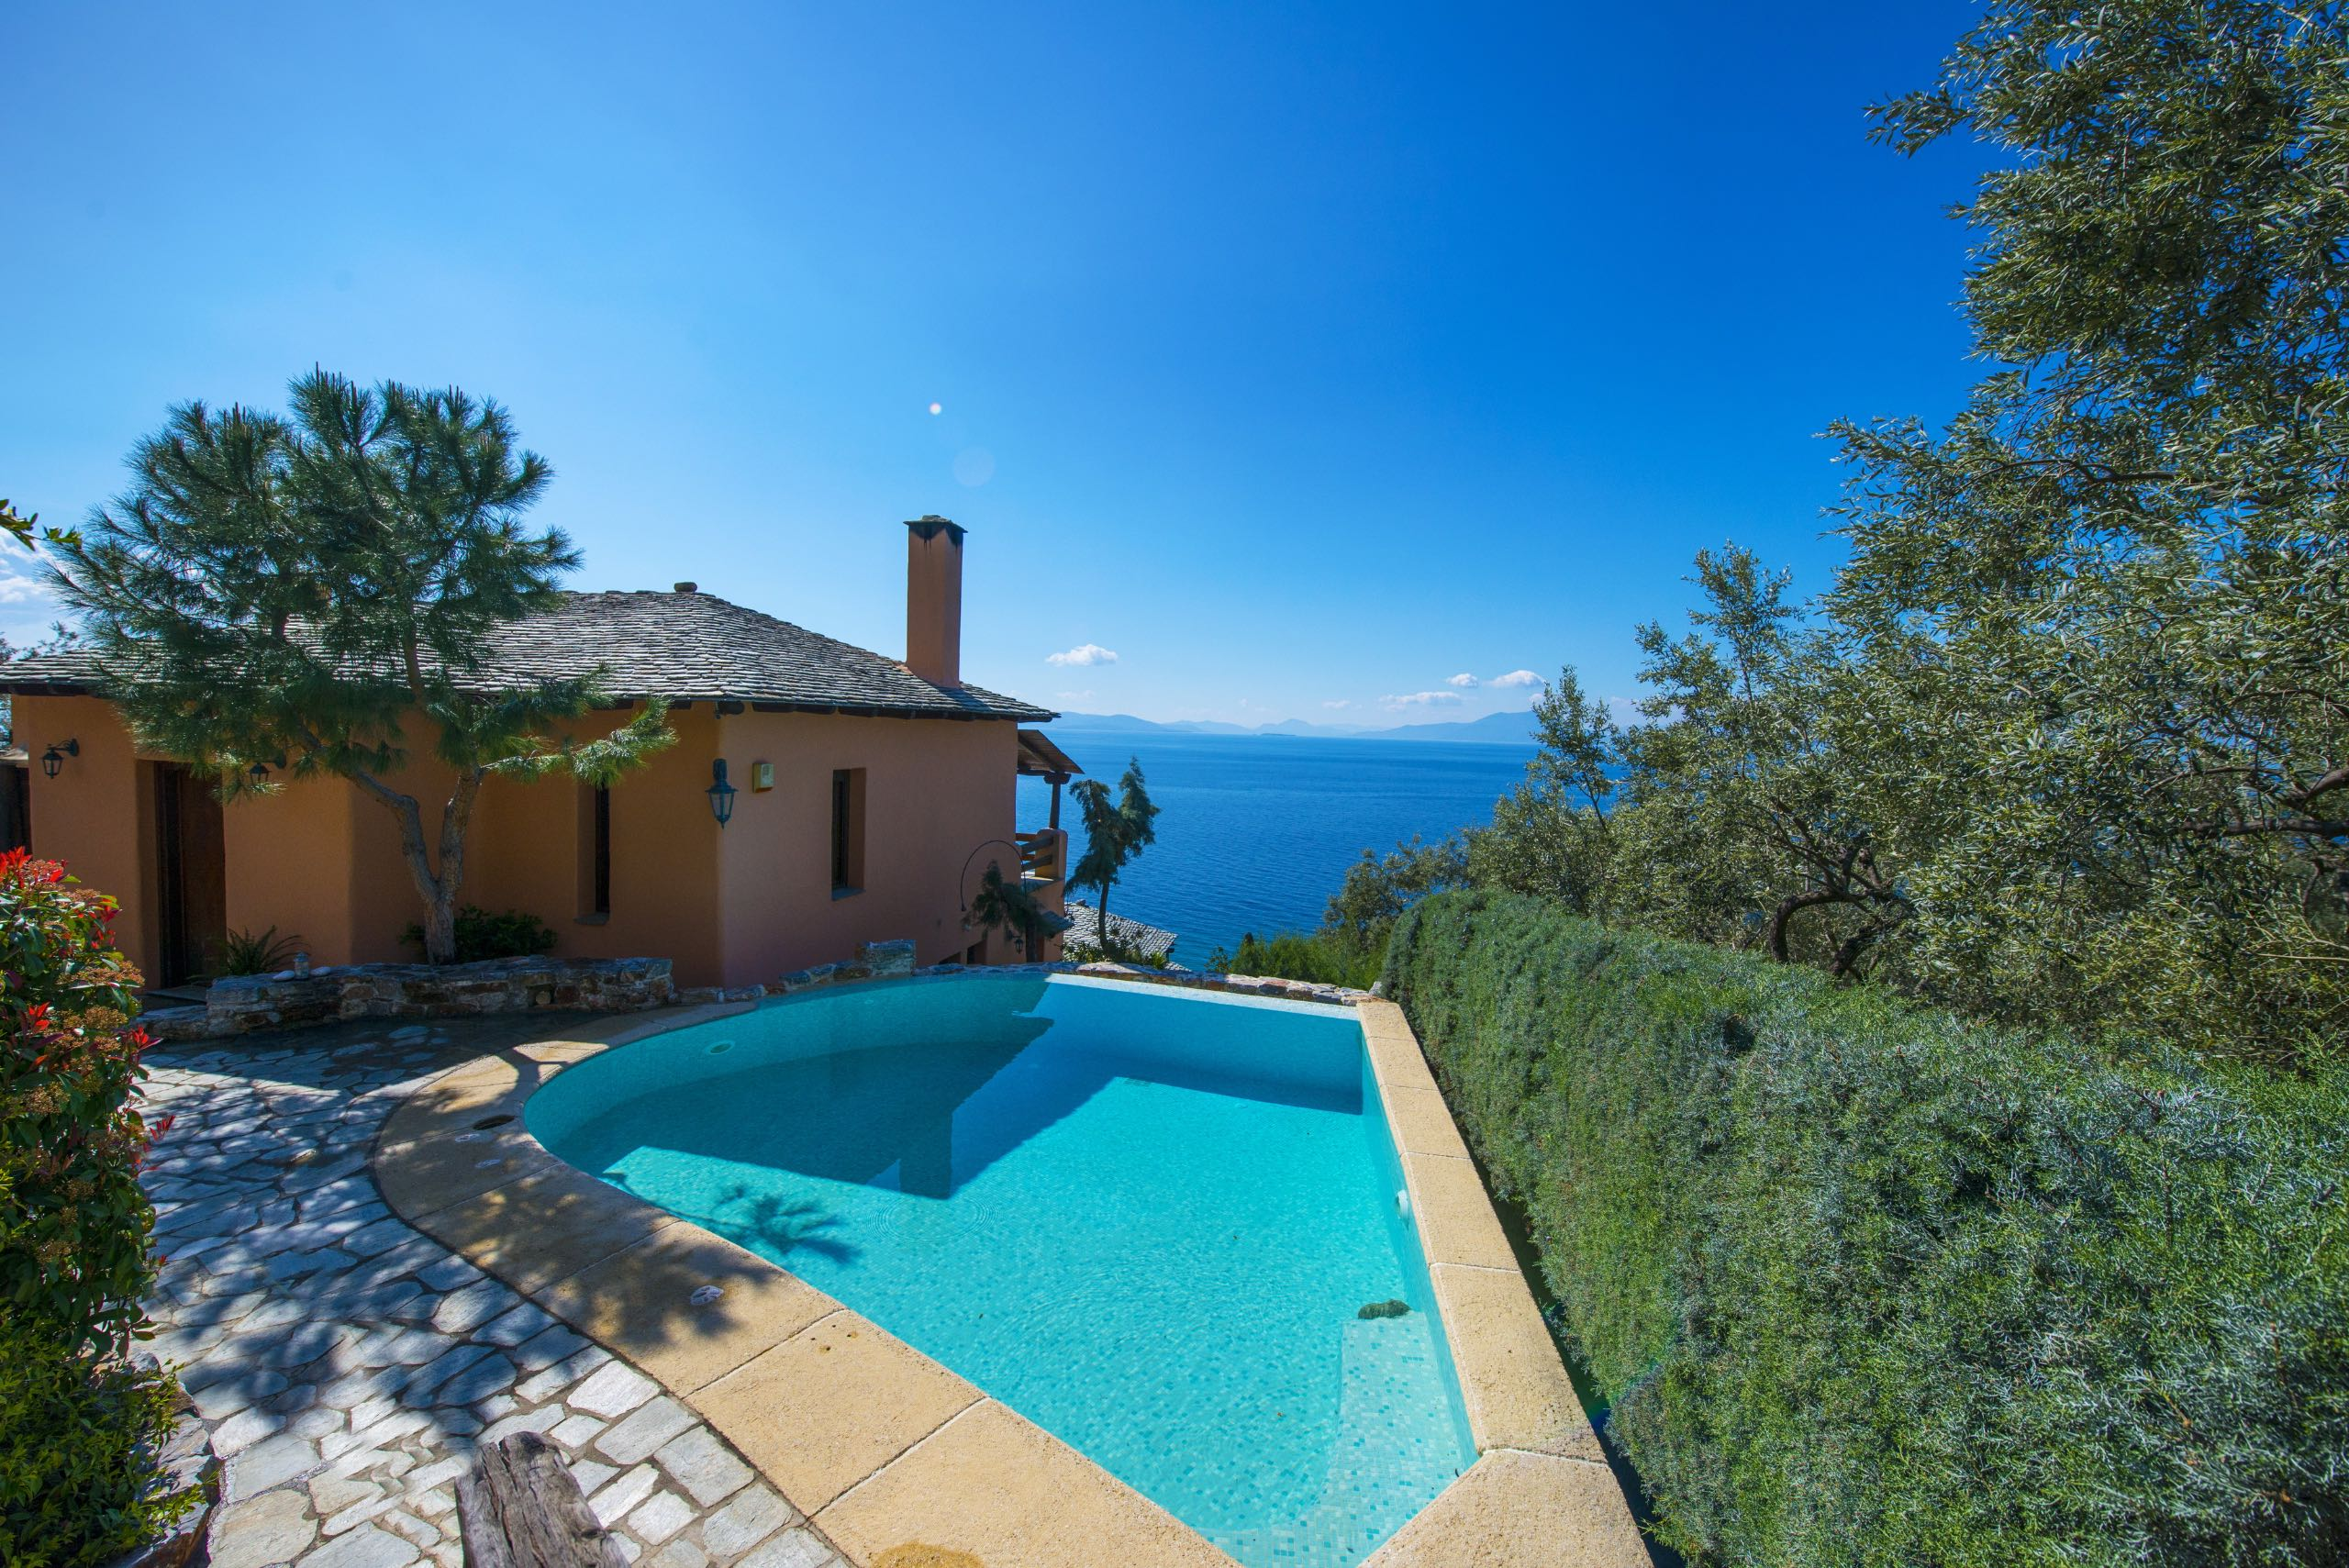 The private swimming pool of Villa 2 Cypresses in Pelion with amazing sea views.